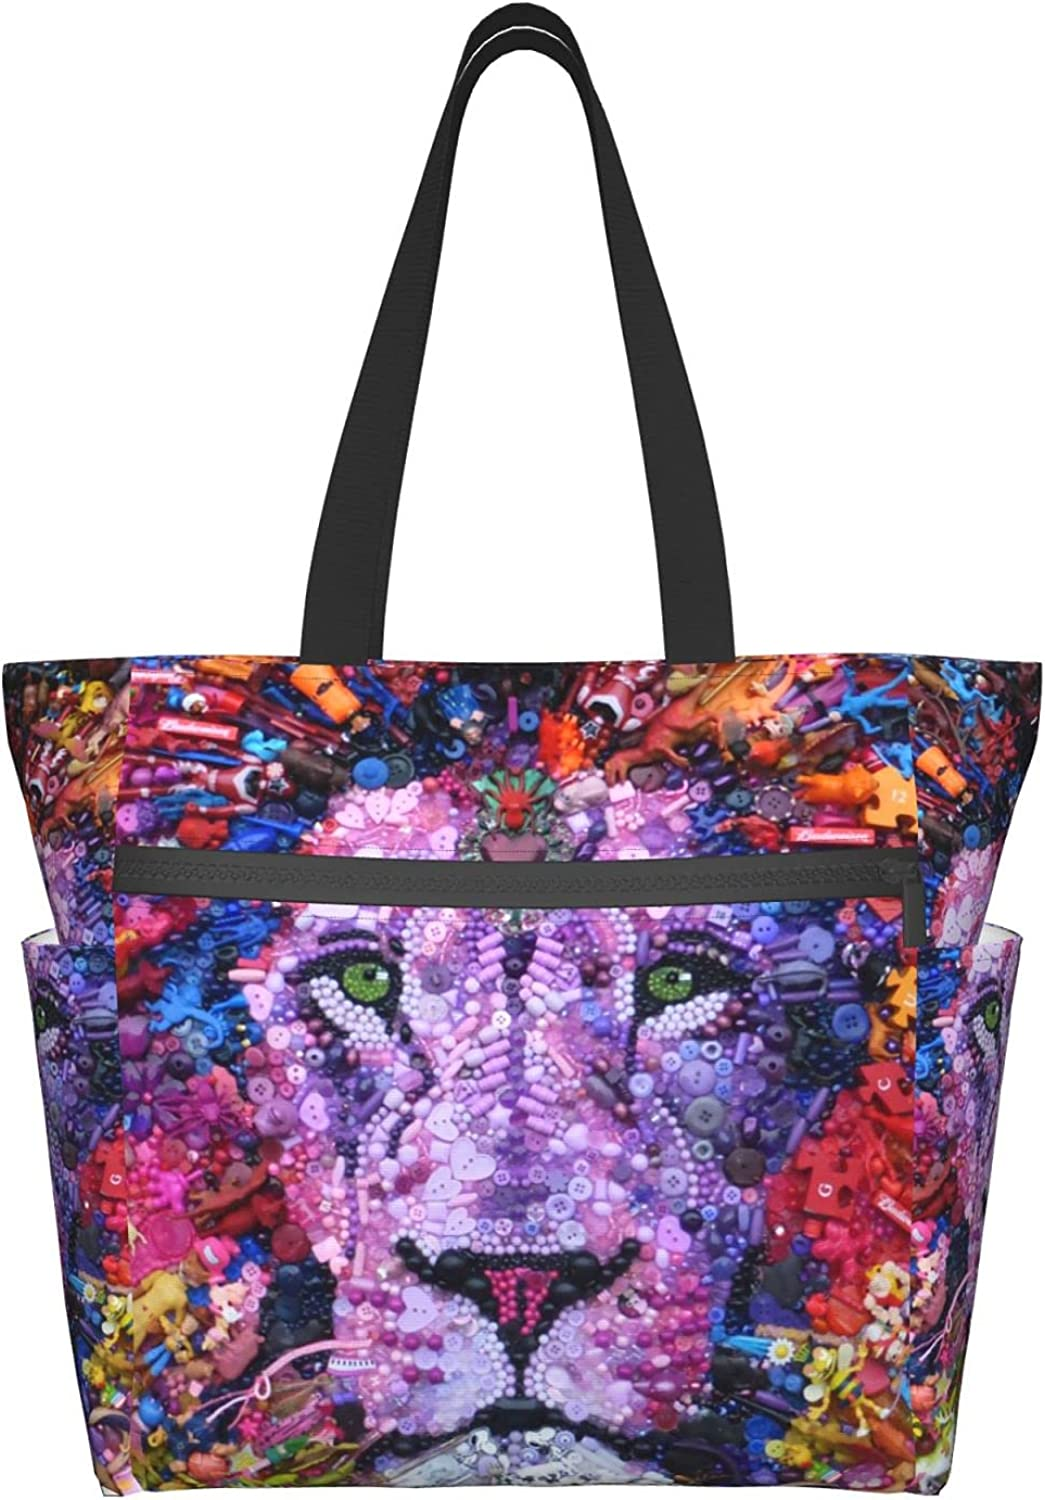 Tote Bag with safety Zipper for Women Bombing new work Purse Lion Handbag Bags Daily